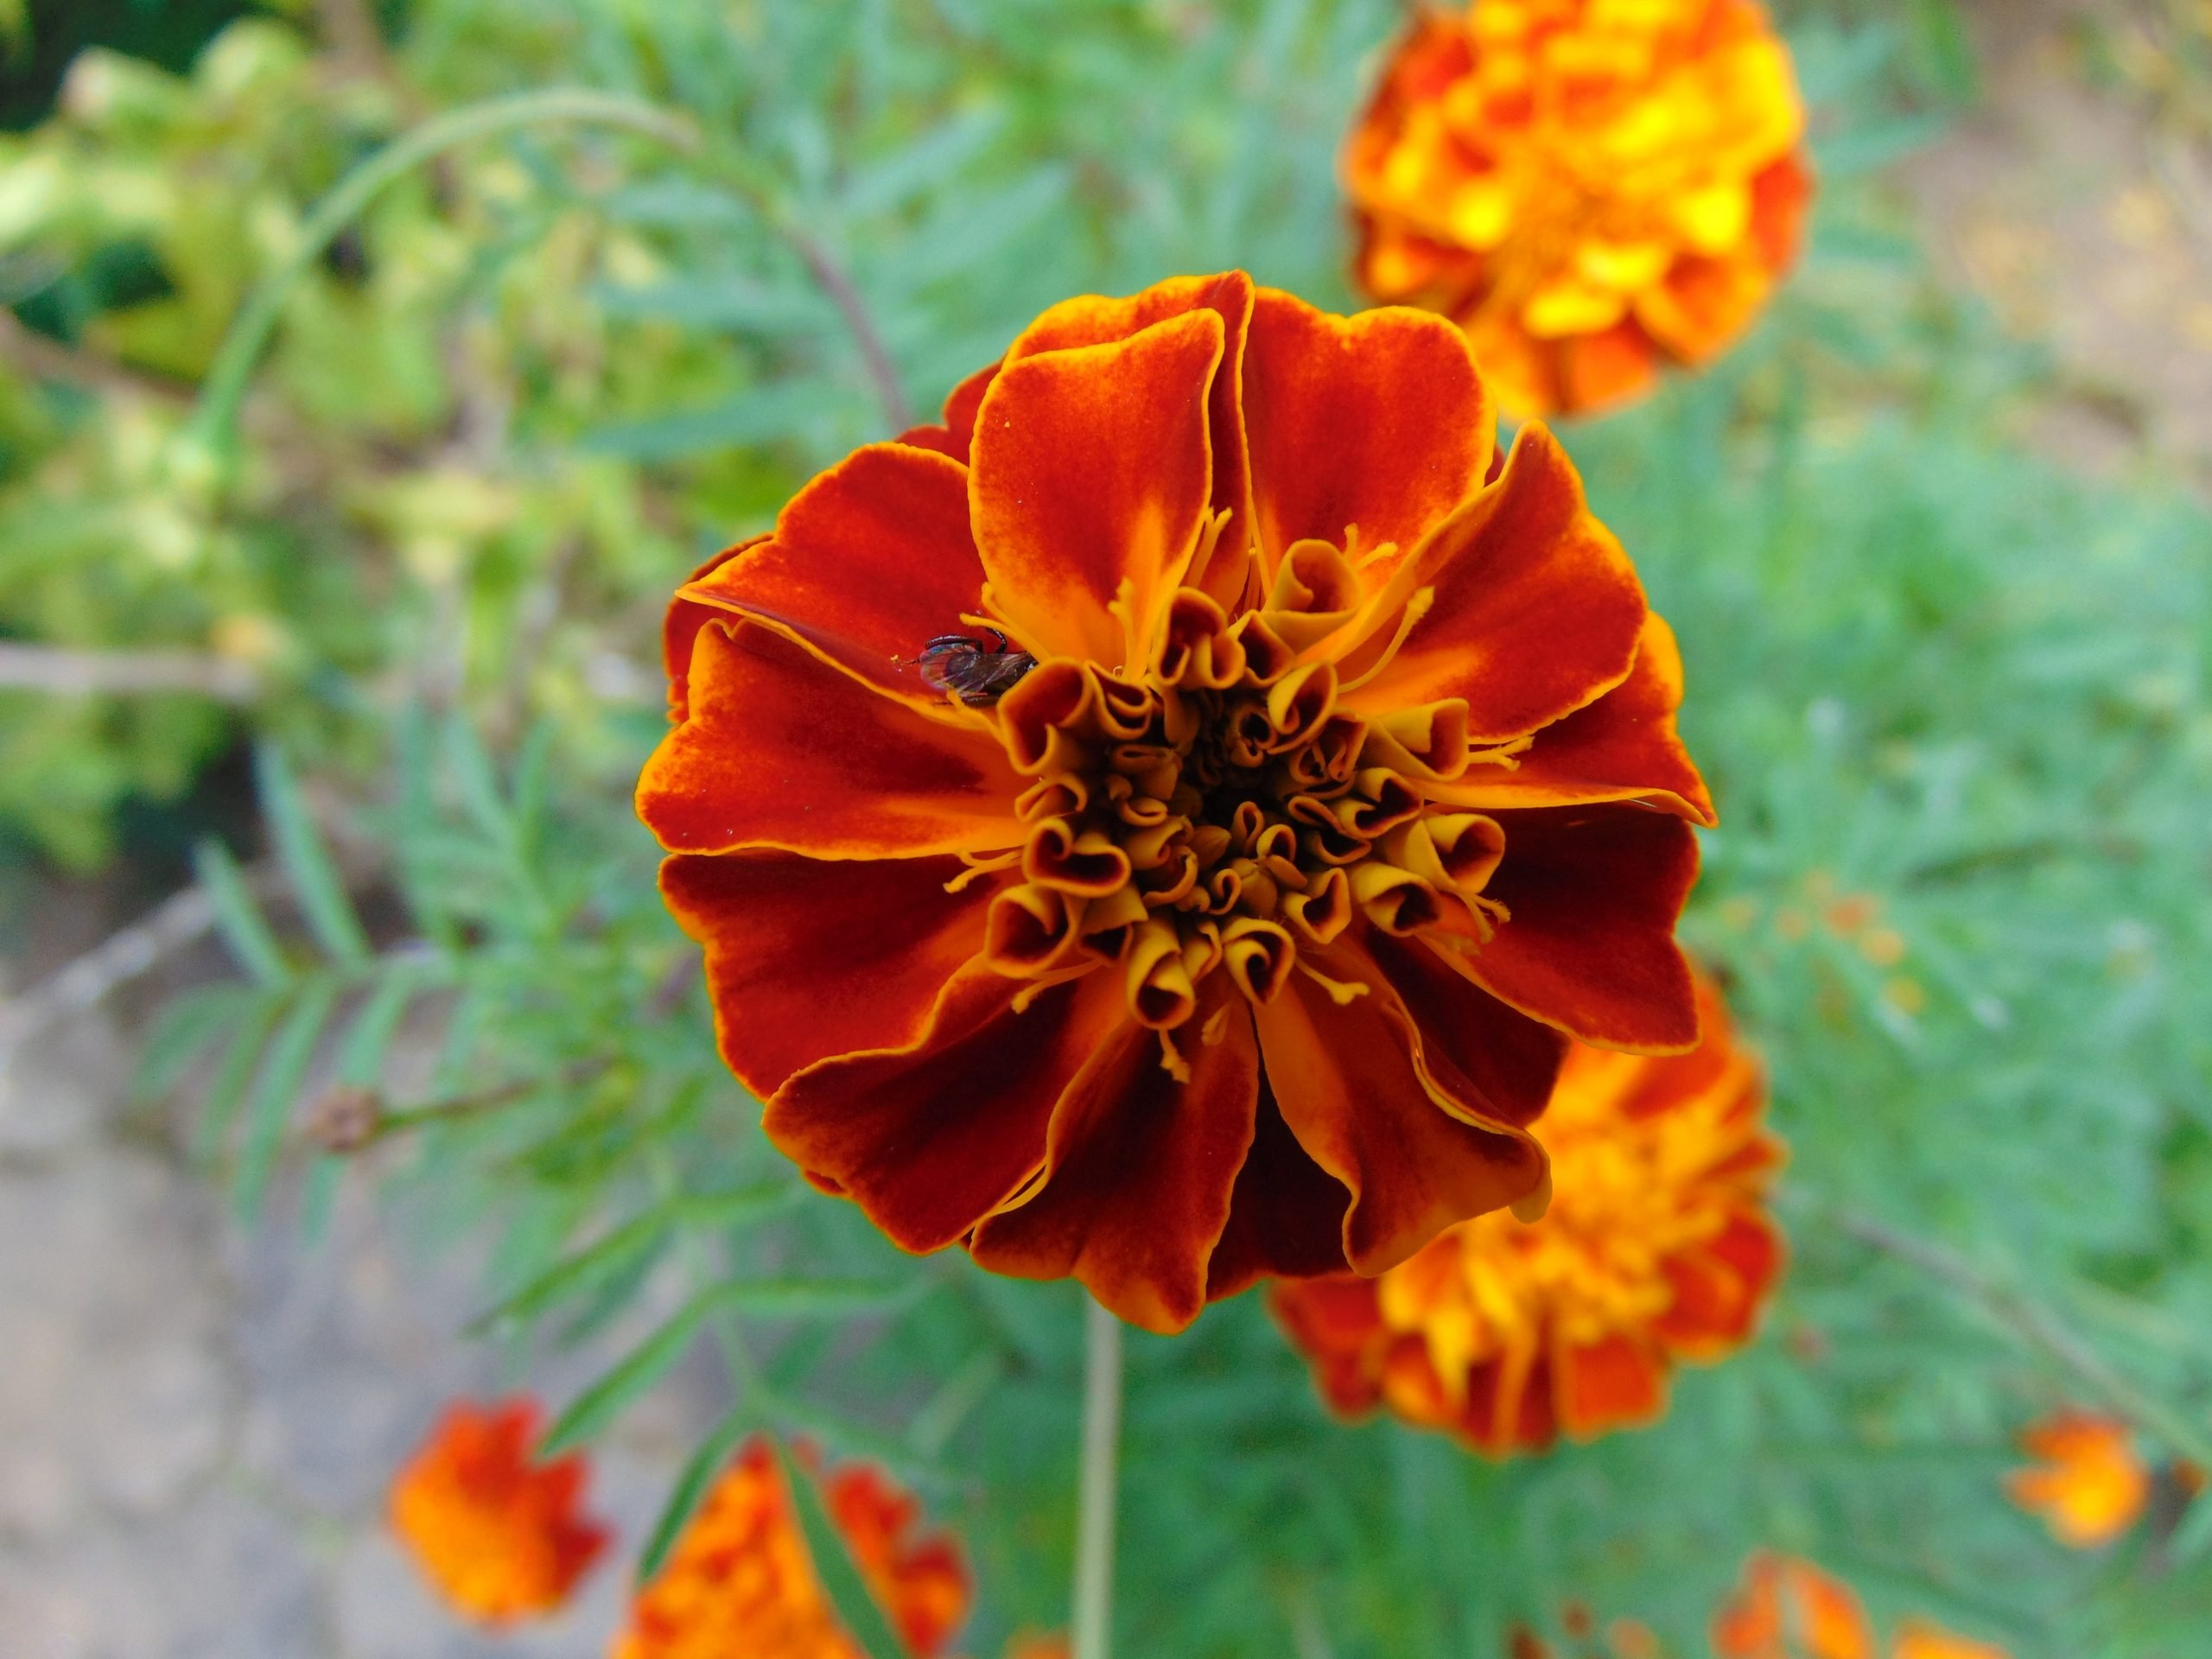 French Marigold Flower on Focus